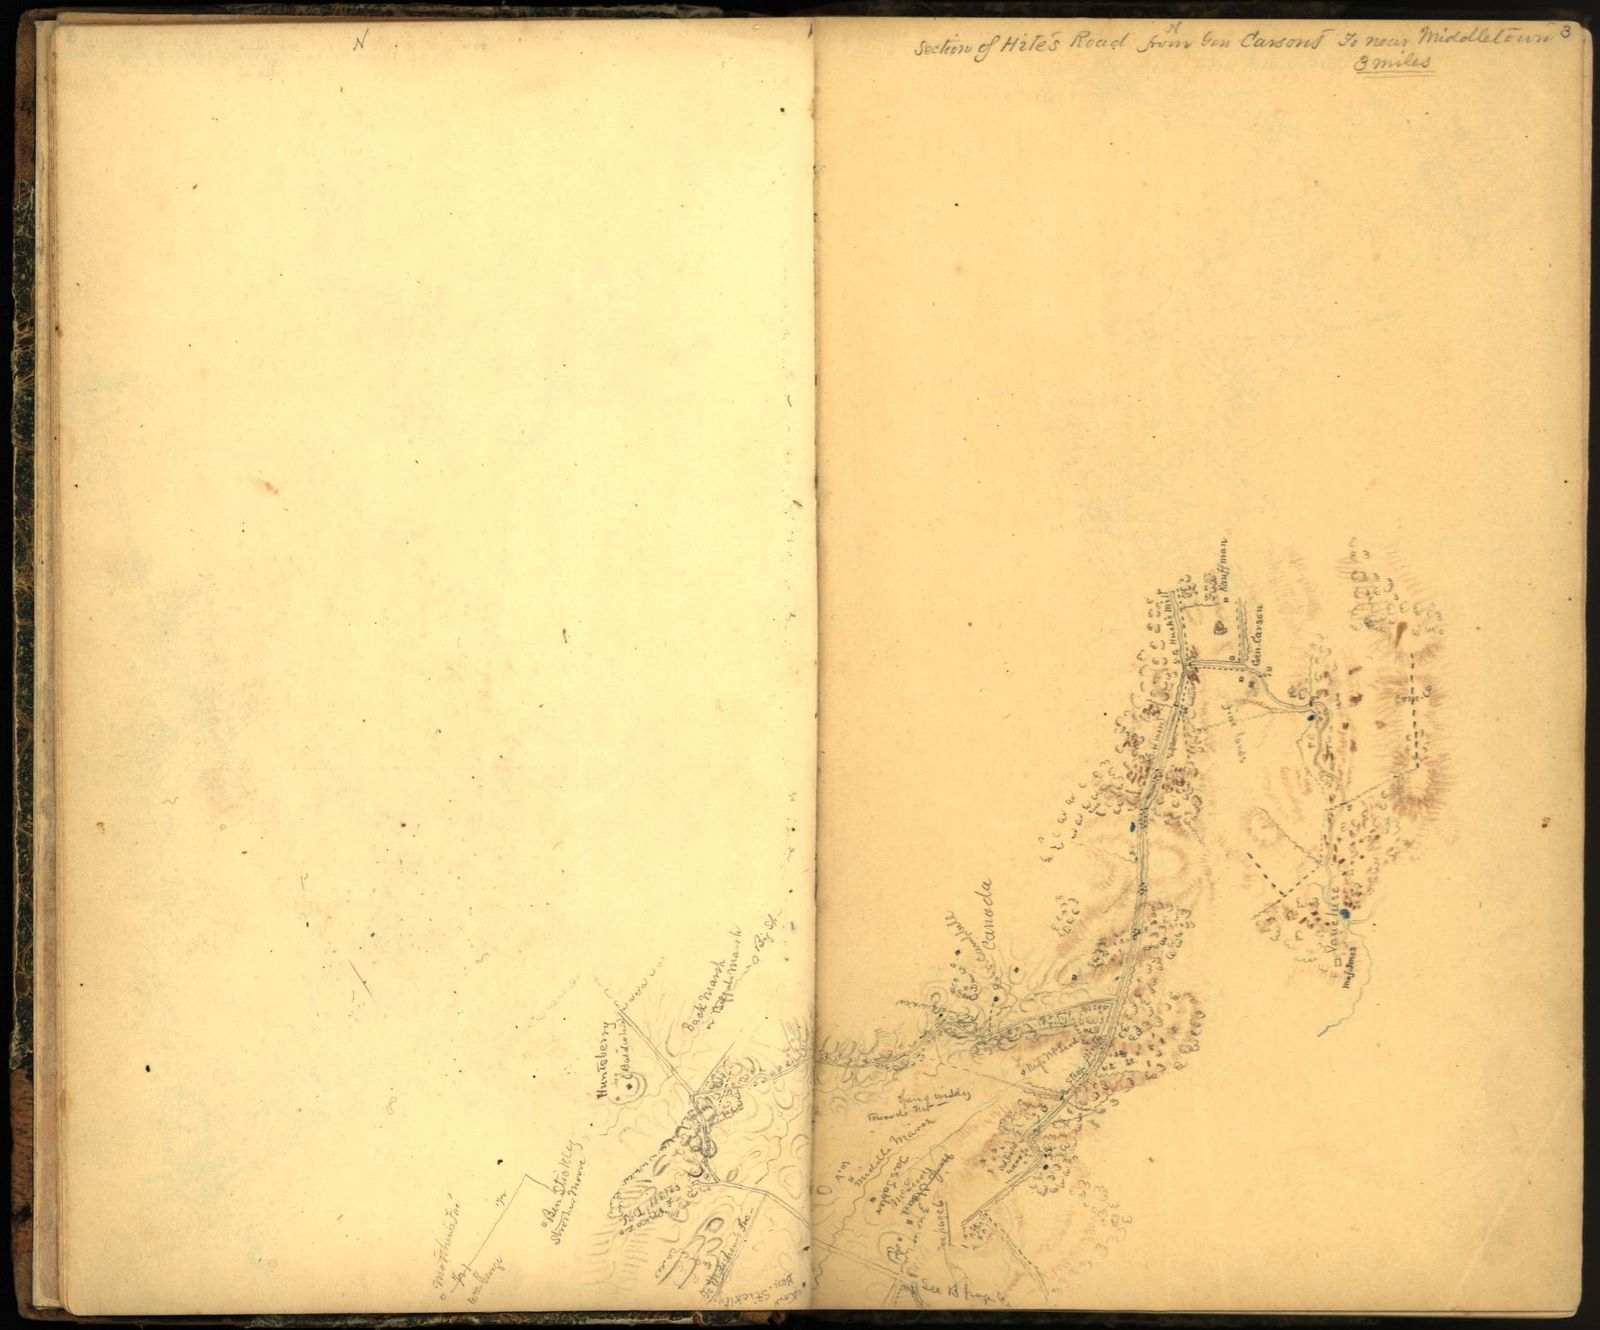 Sketch book of Jed. Hotchkiss, Capt. & Top. Eng., Hd. Qrs., 2nd Corps, Army of N. Virginia : [Virginia].